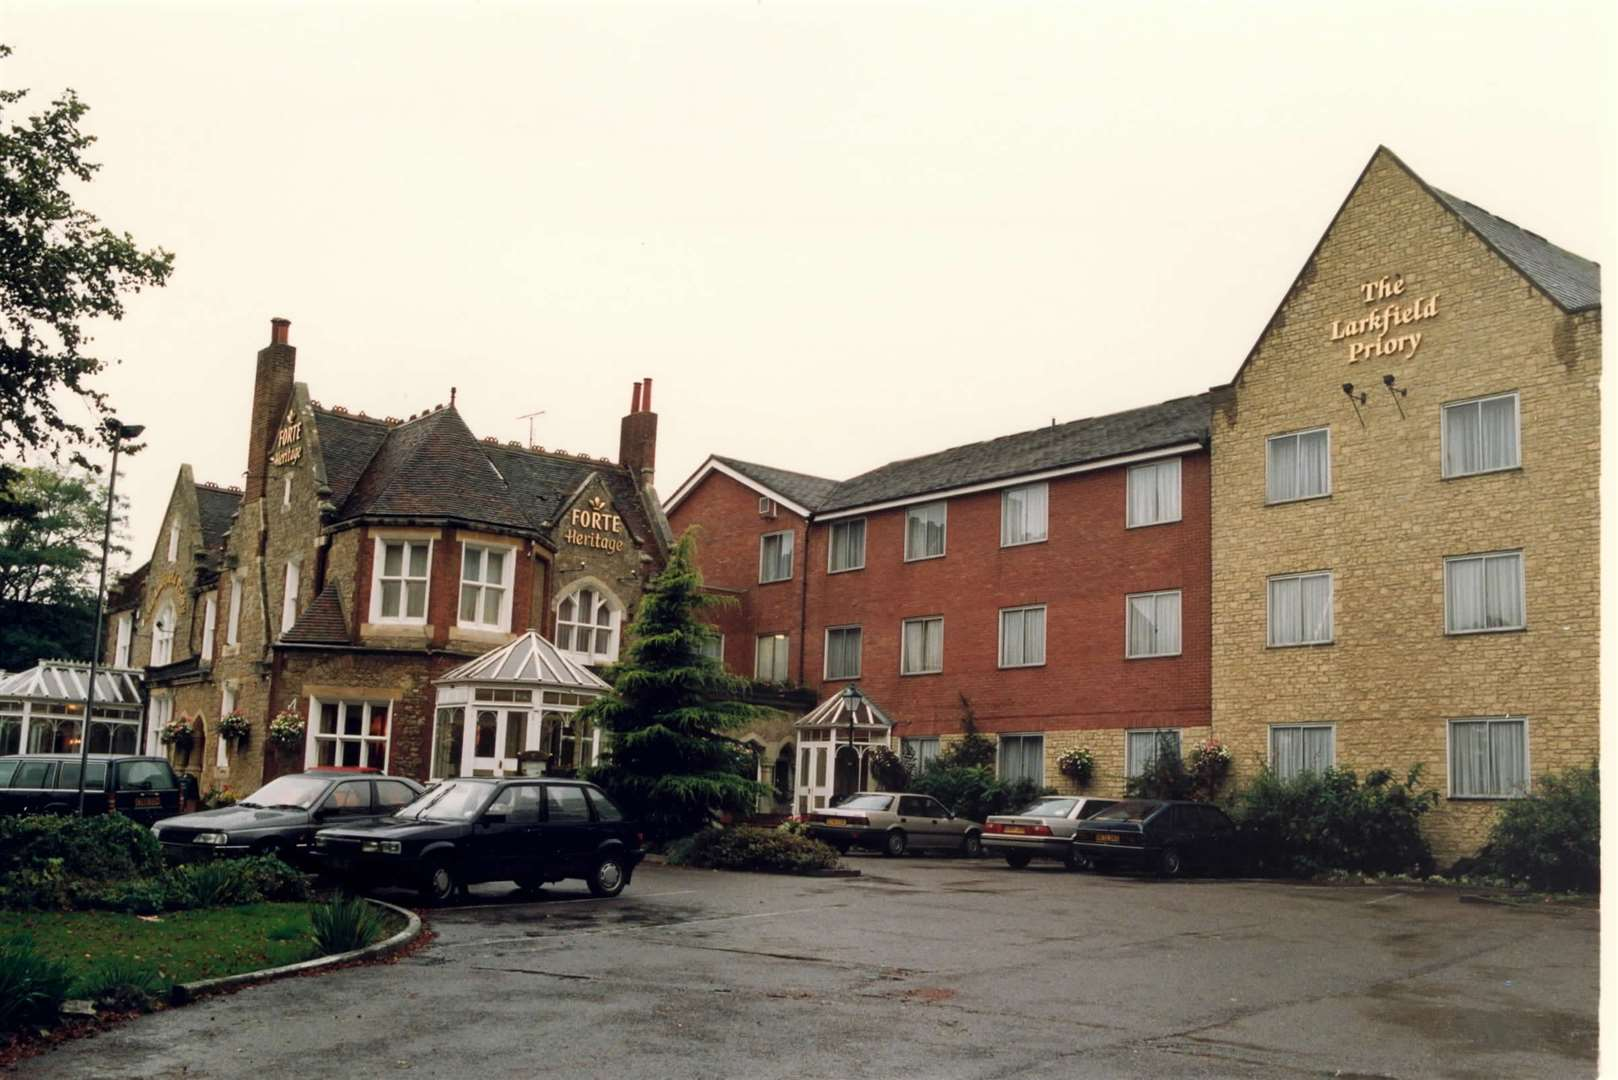 The Larkfield Priory, in London Road, Larkfield